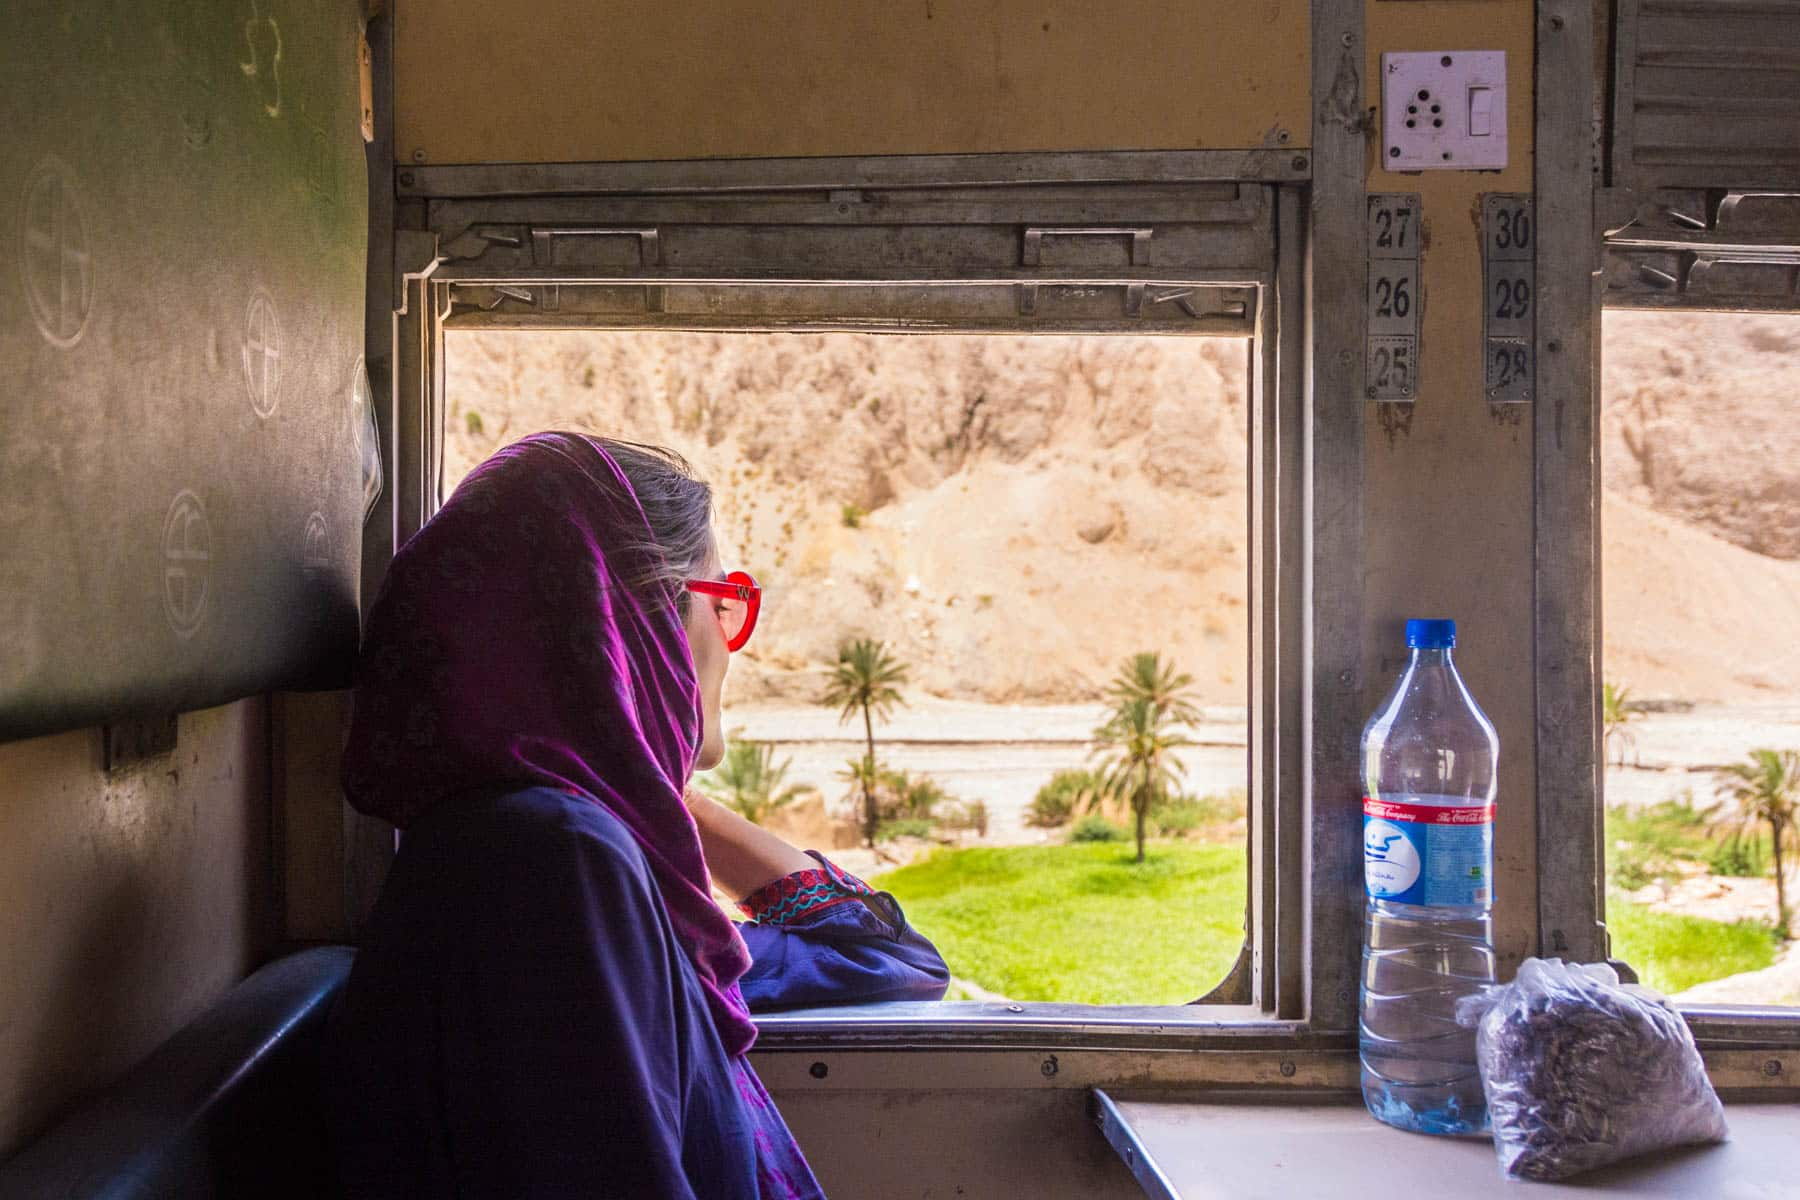 Guide to train travel in Pakistan - Female safety on the trains - Lost With Purpose travel blog